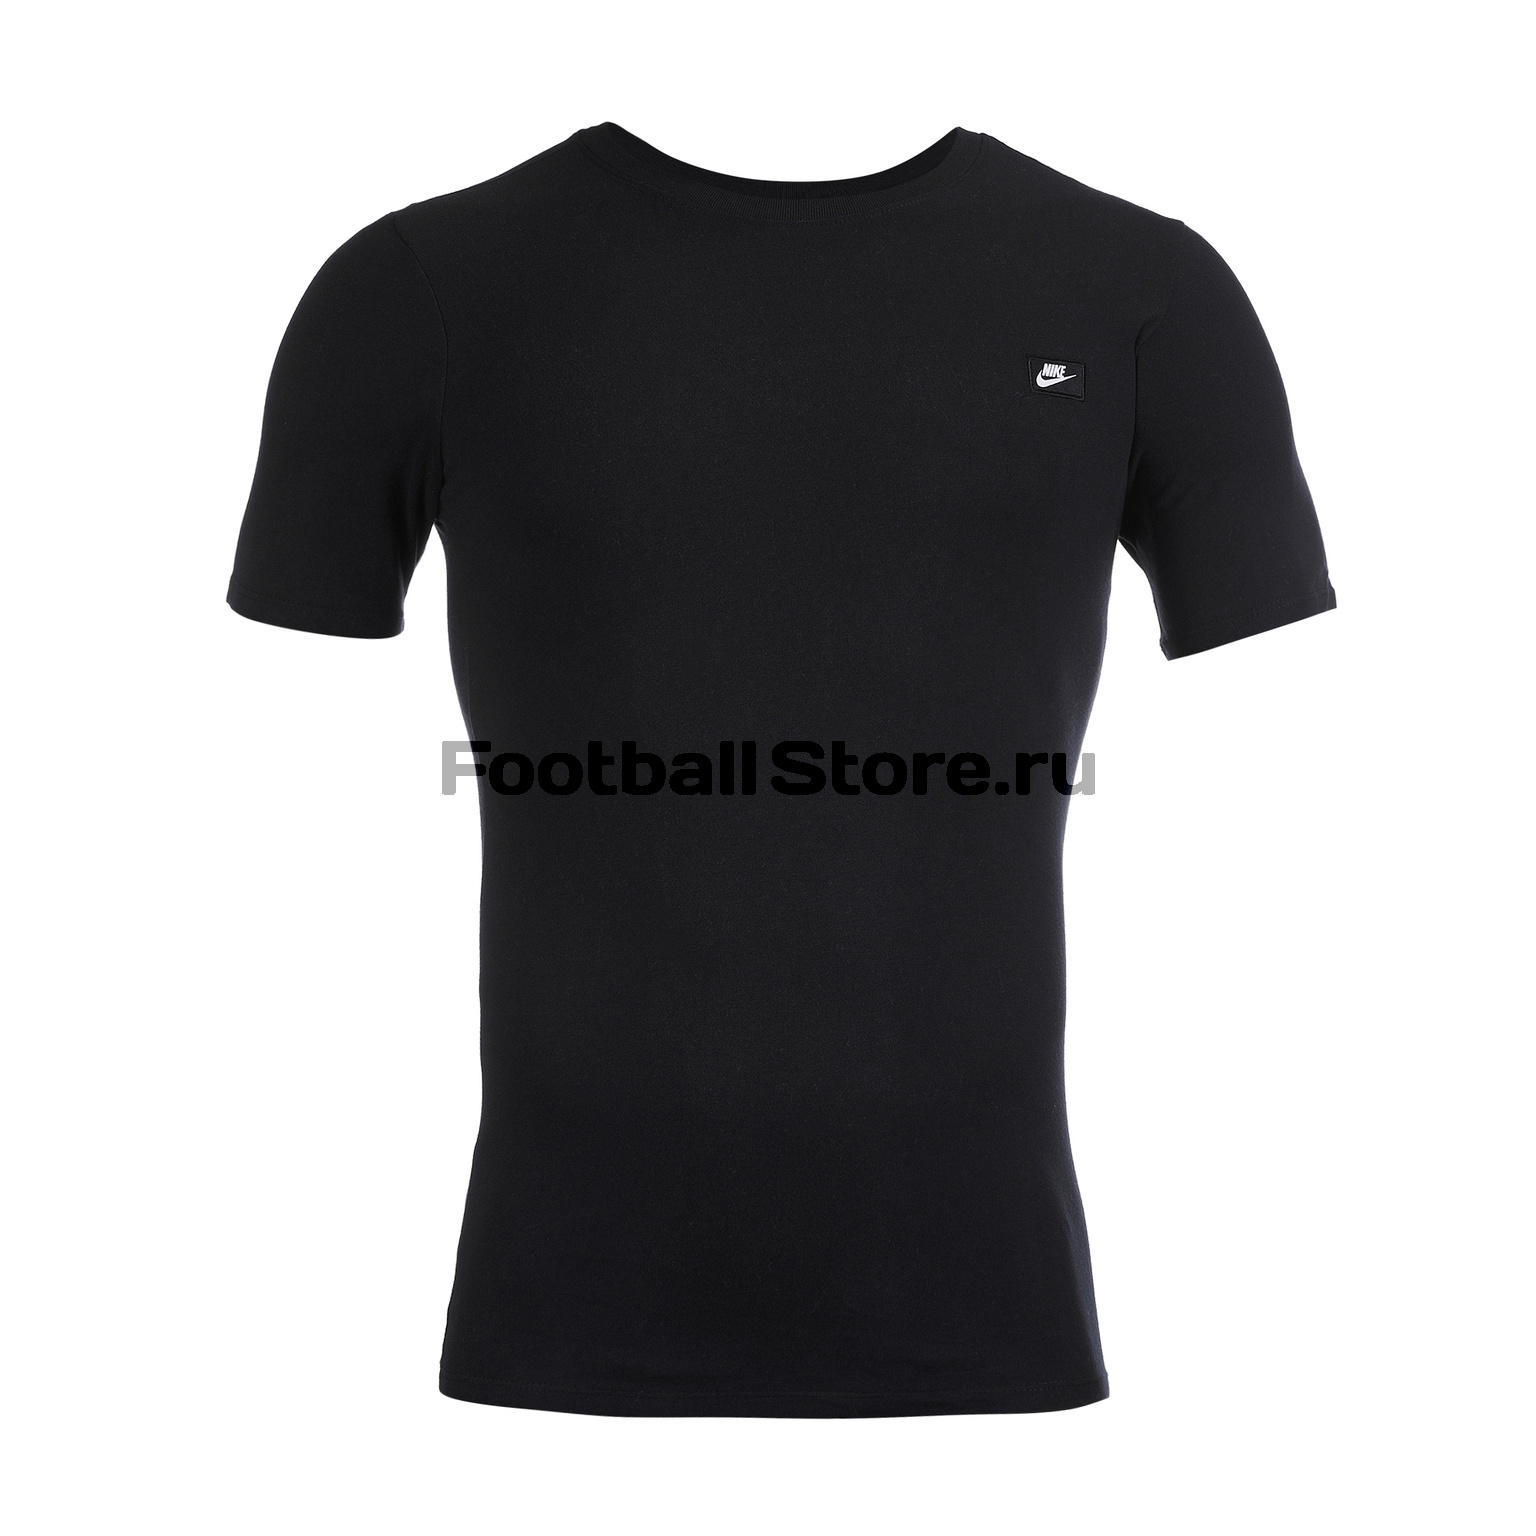 Футболка тренировочная Nike Tee AH7925-010 футболка nike футболка b nsw tee let there be air page 4